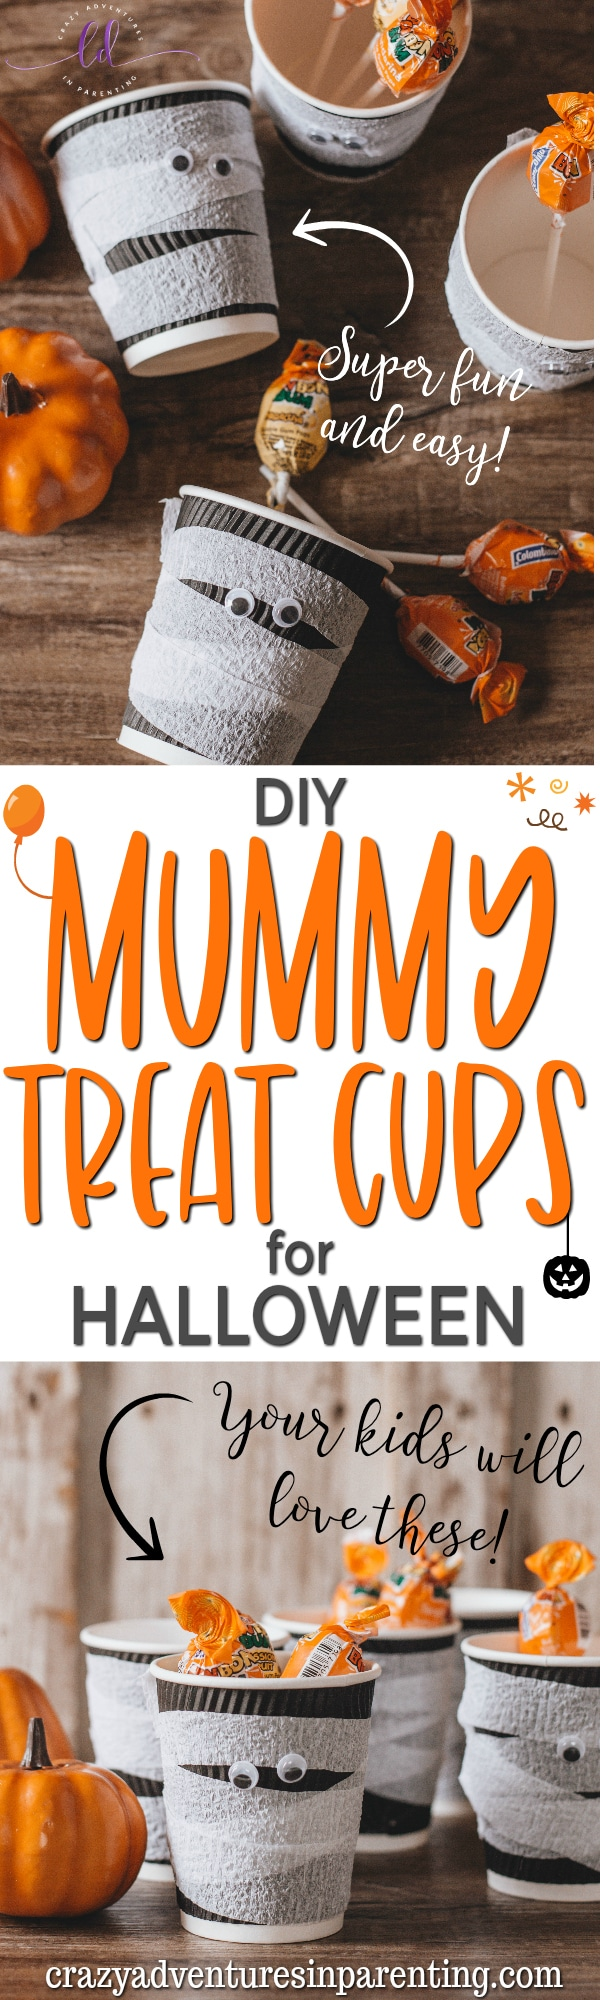 DIY Mummy Treat Cups for Halloween